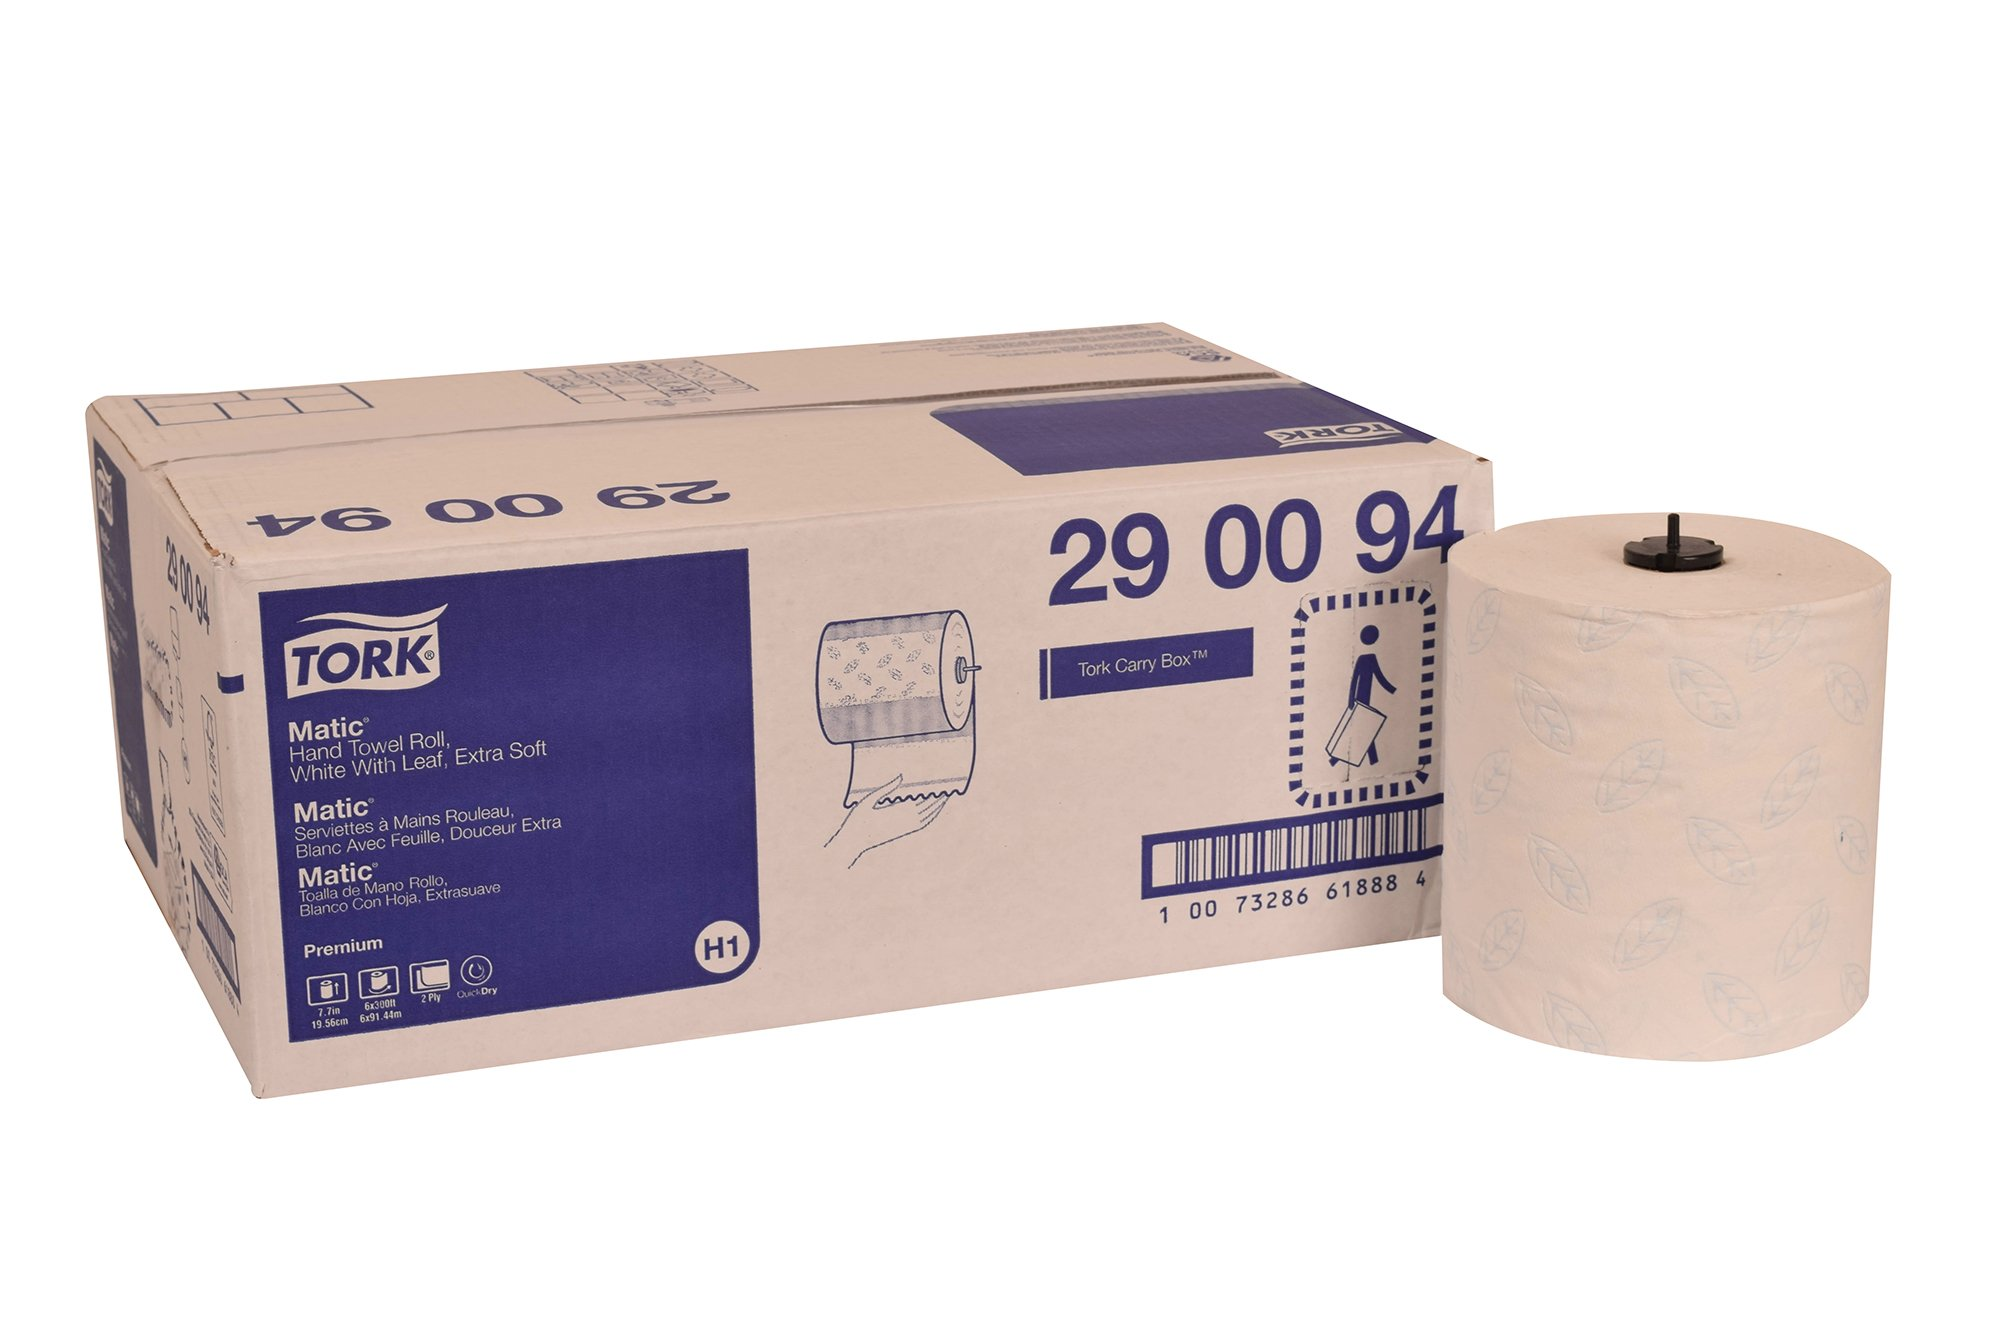 Tork 290094 Premium Extra Soft Matic Paper Hand Towel Roll, 1-Ply, 7.7